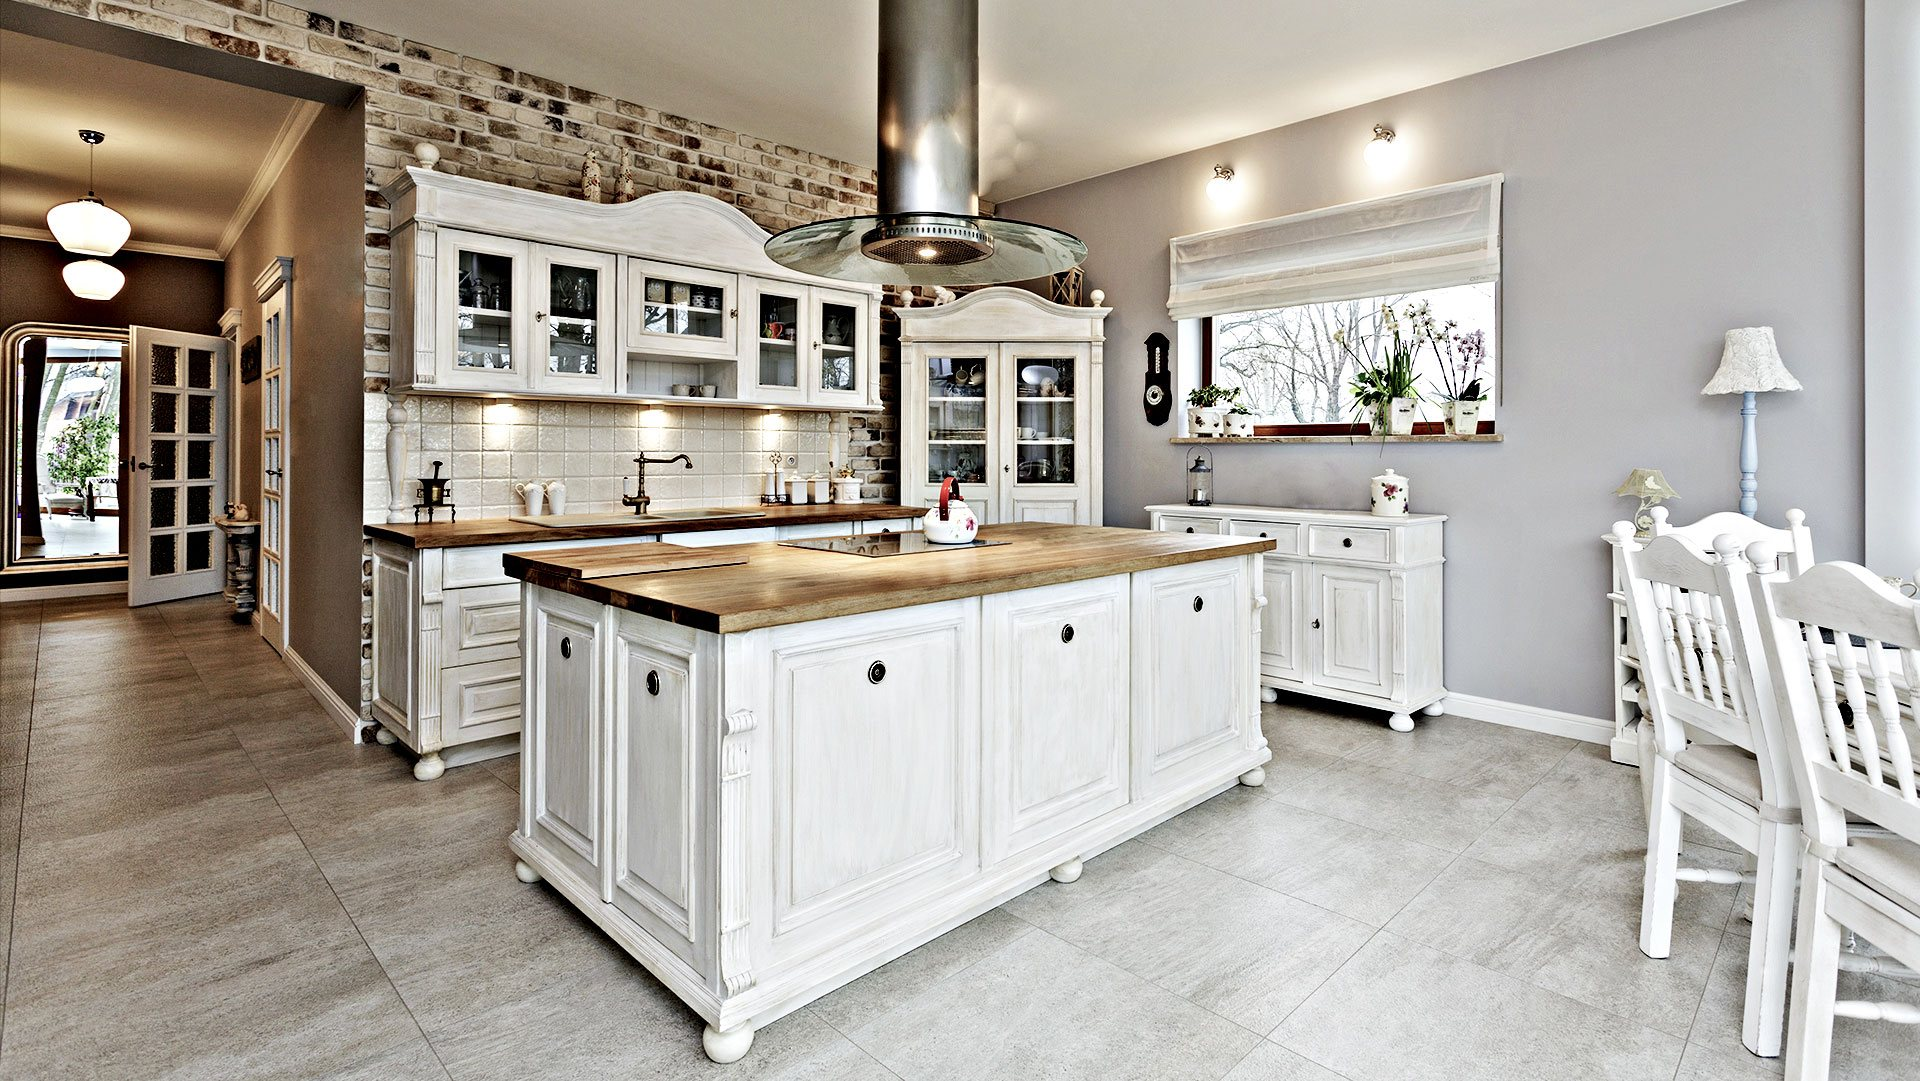 Spencer & Sons Construction Remodeled Kitchen 2